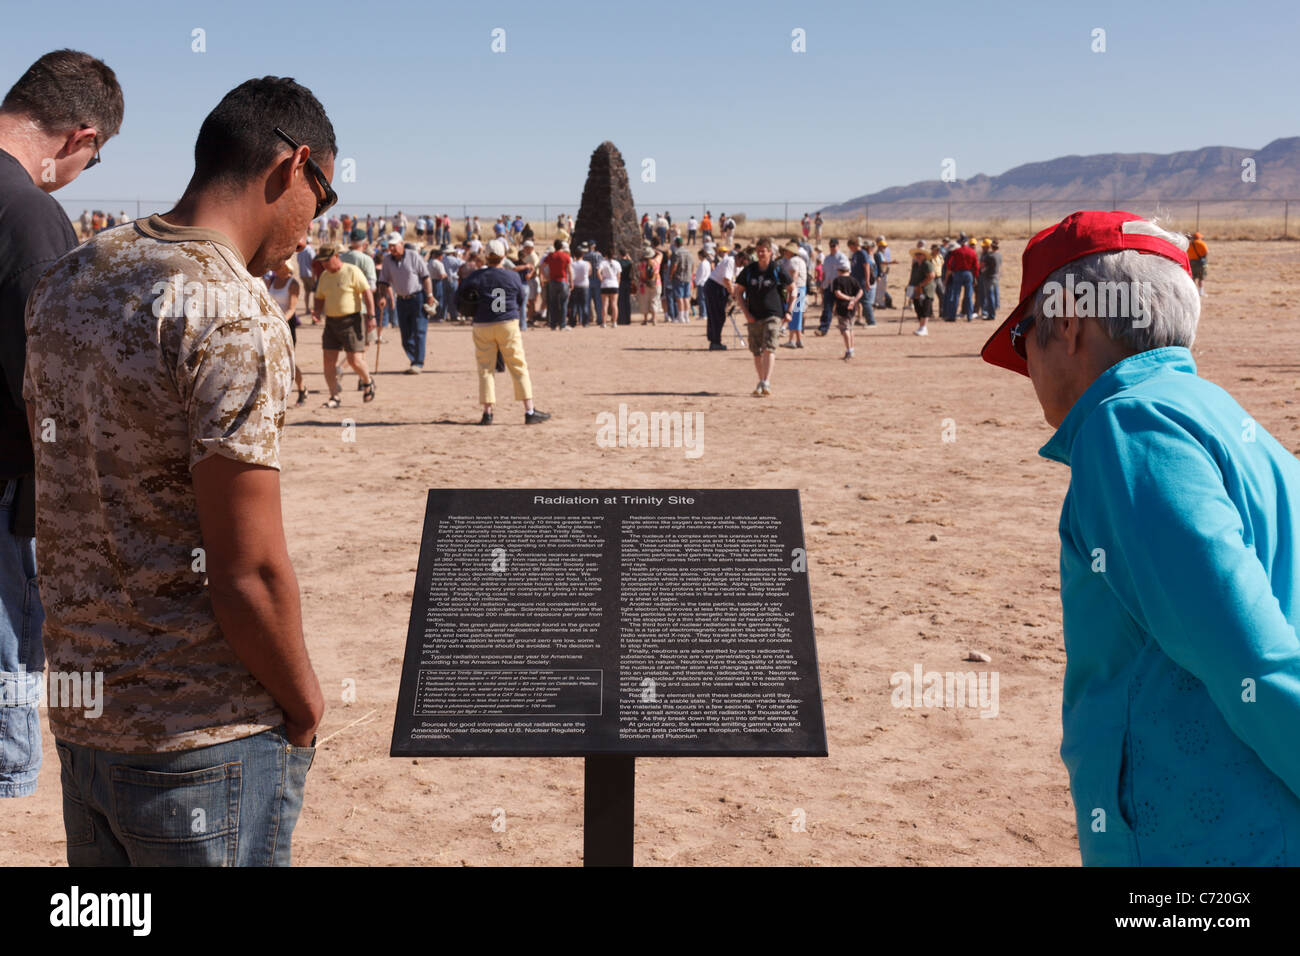 Sightseers read a sign at Trinity Site describing radiation at the the site of the world's first atomic bomb - Stock Image